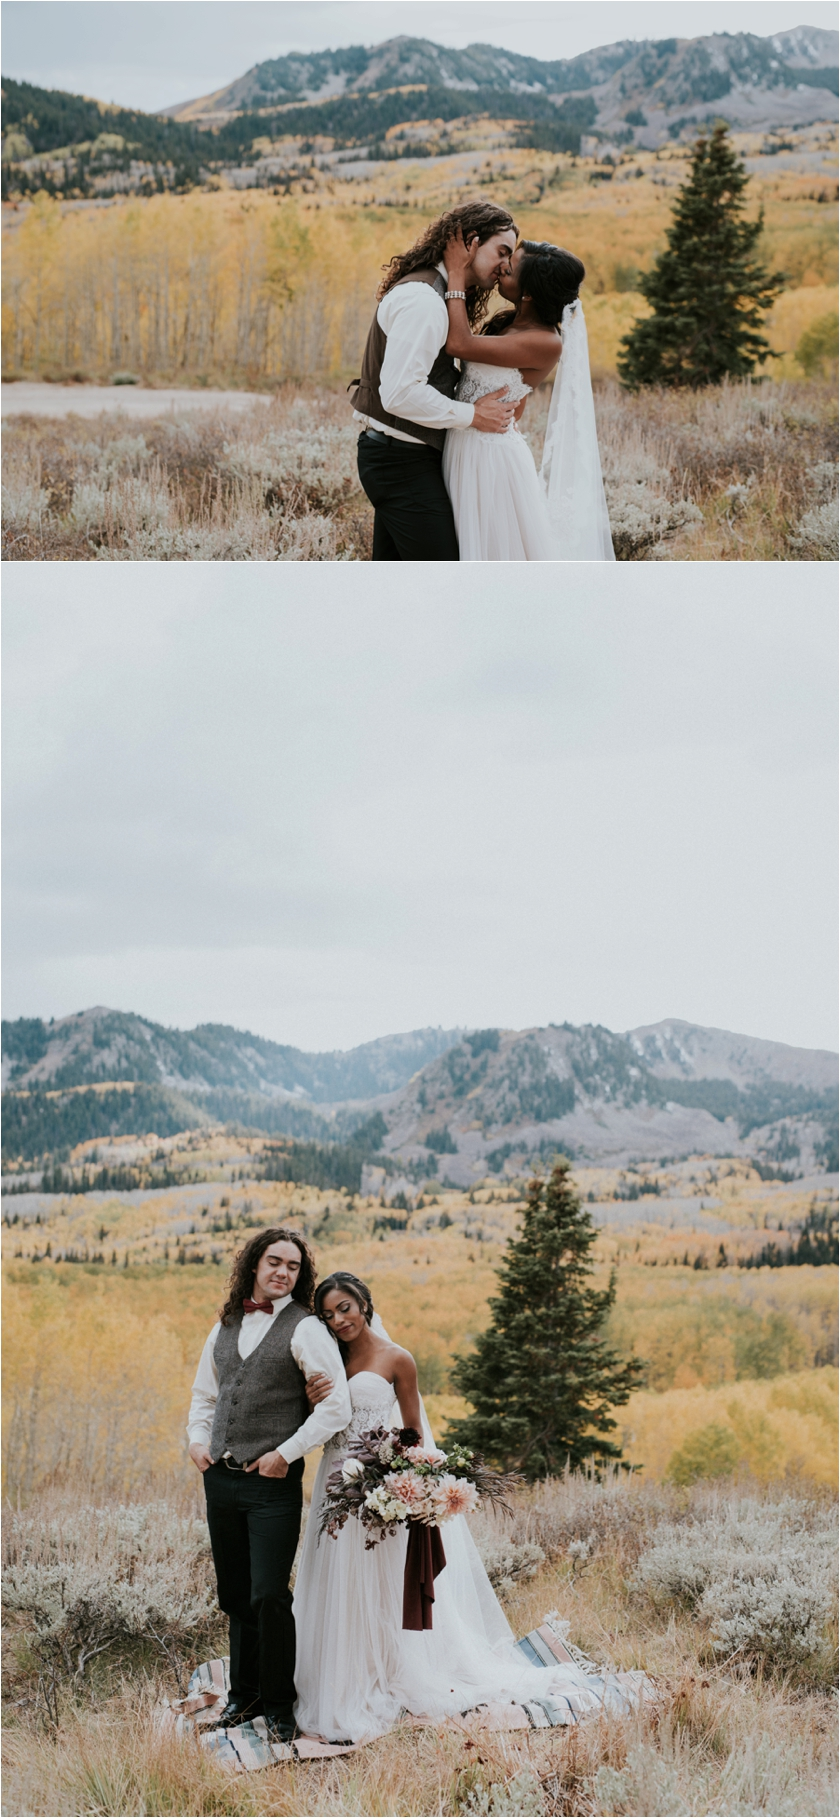 033utah-elopement-photographeramy-cloud-photography